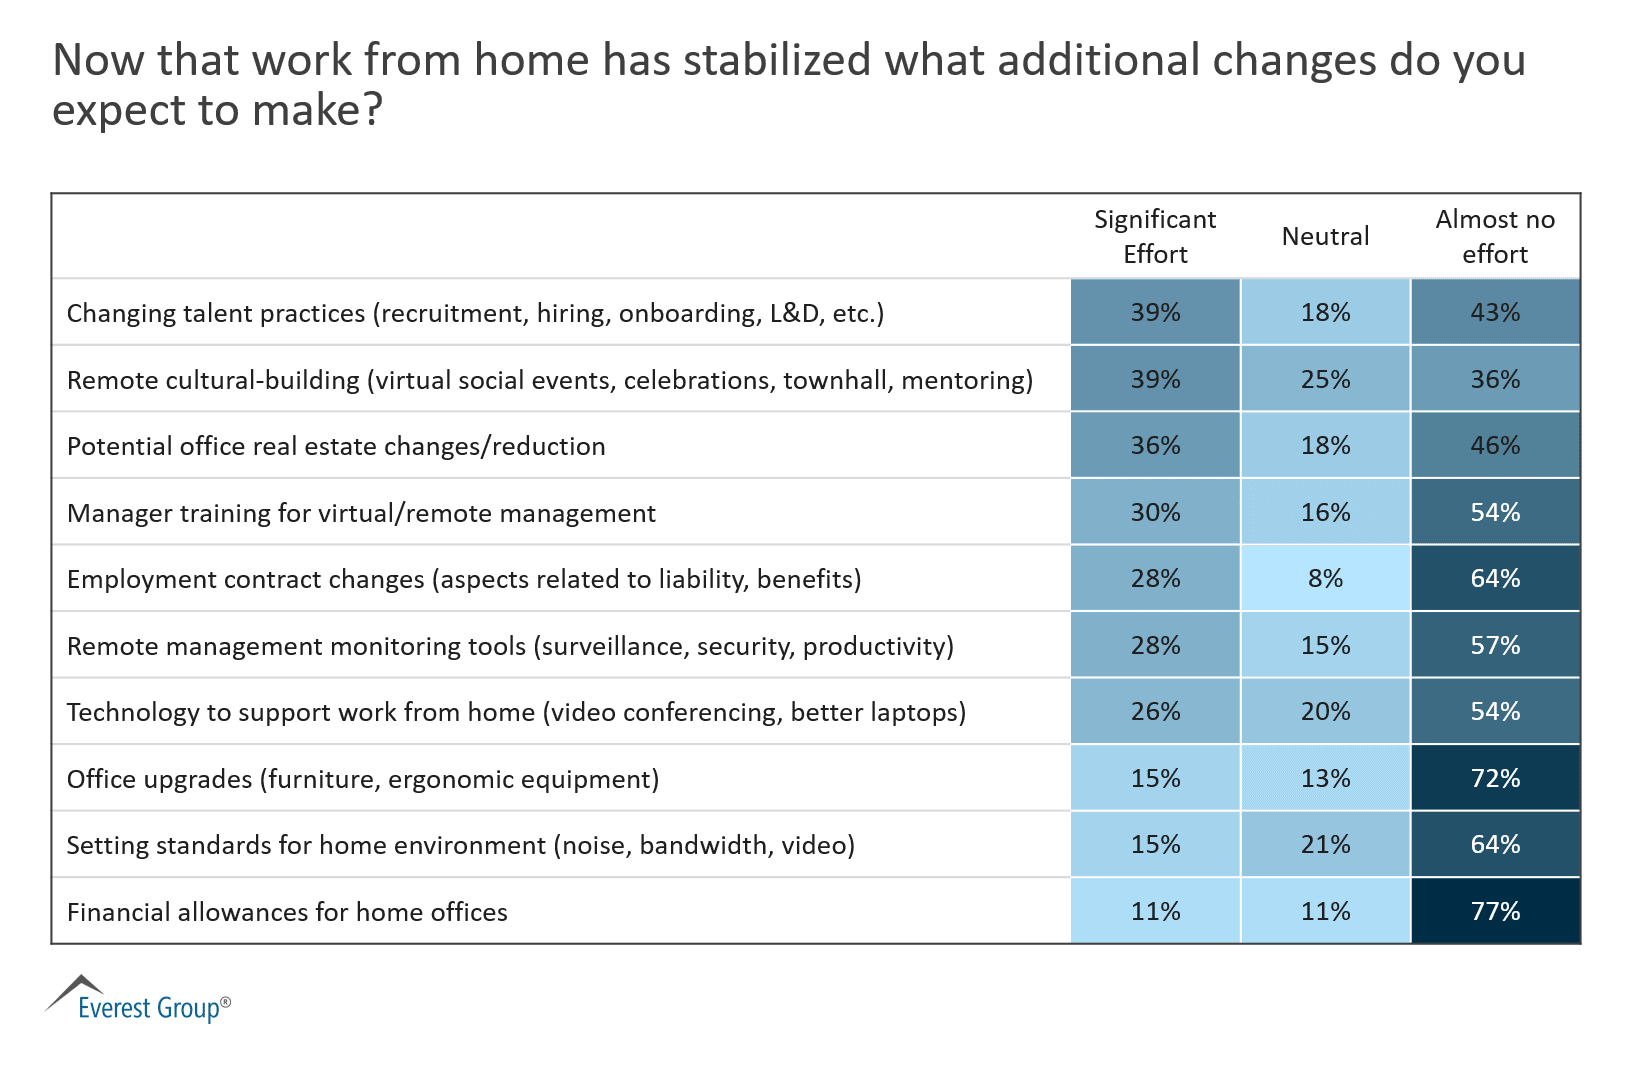 Work from home changes